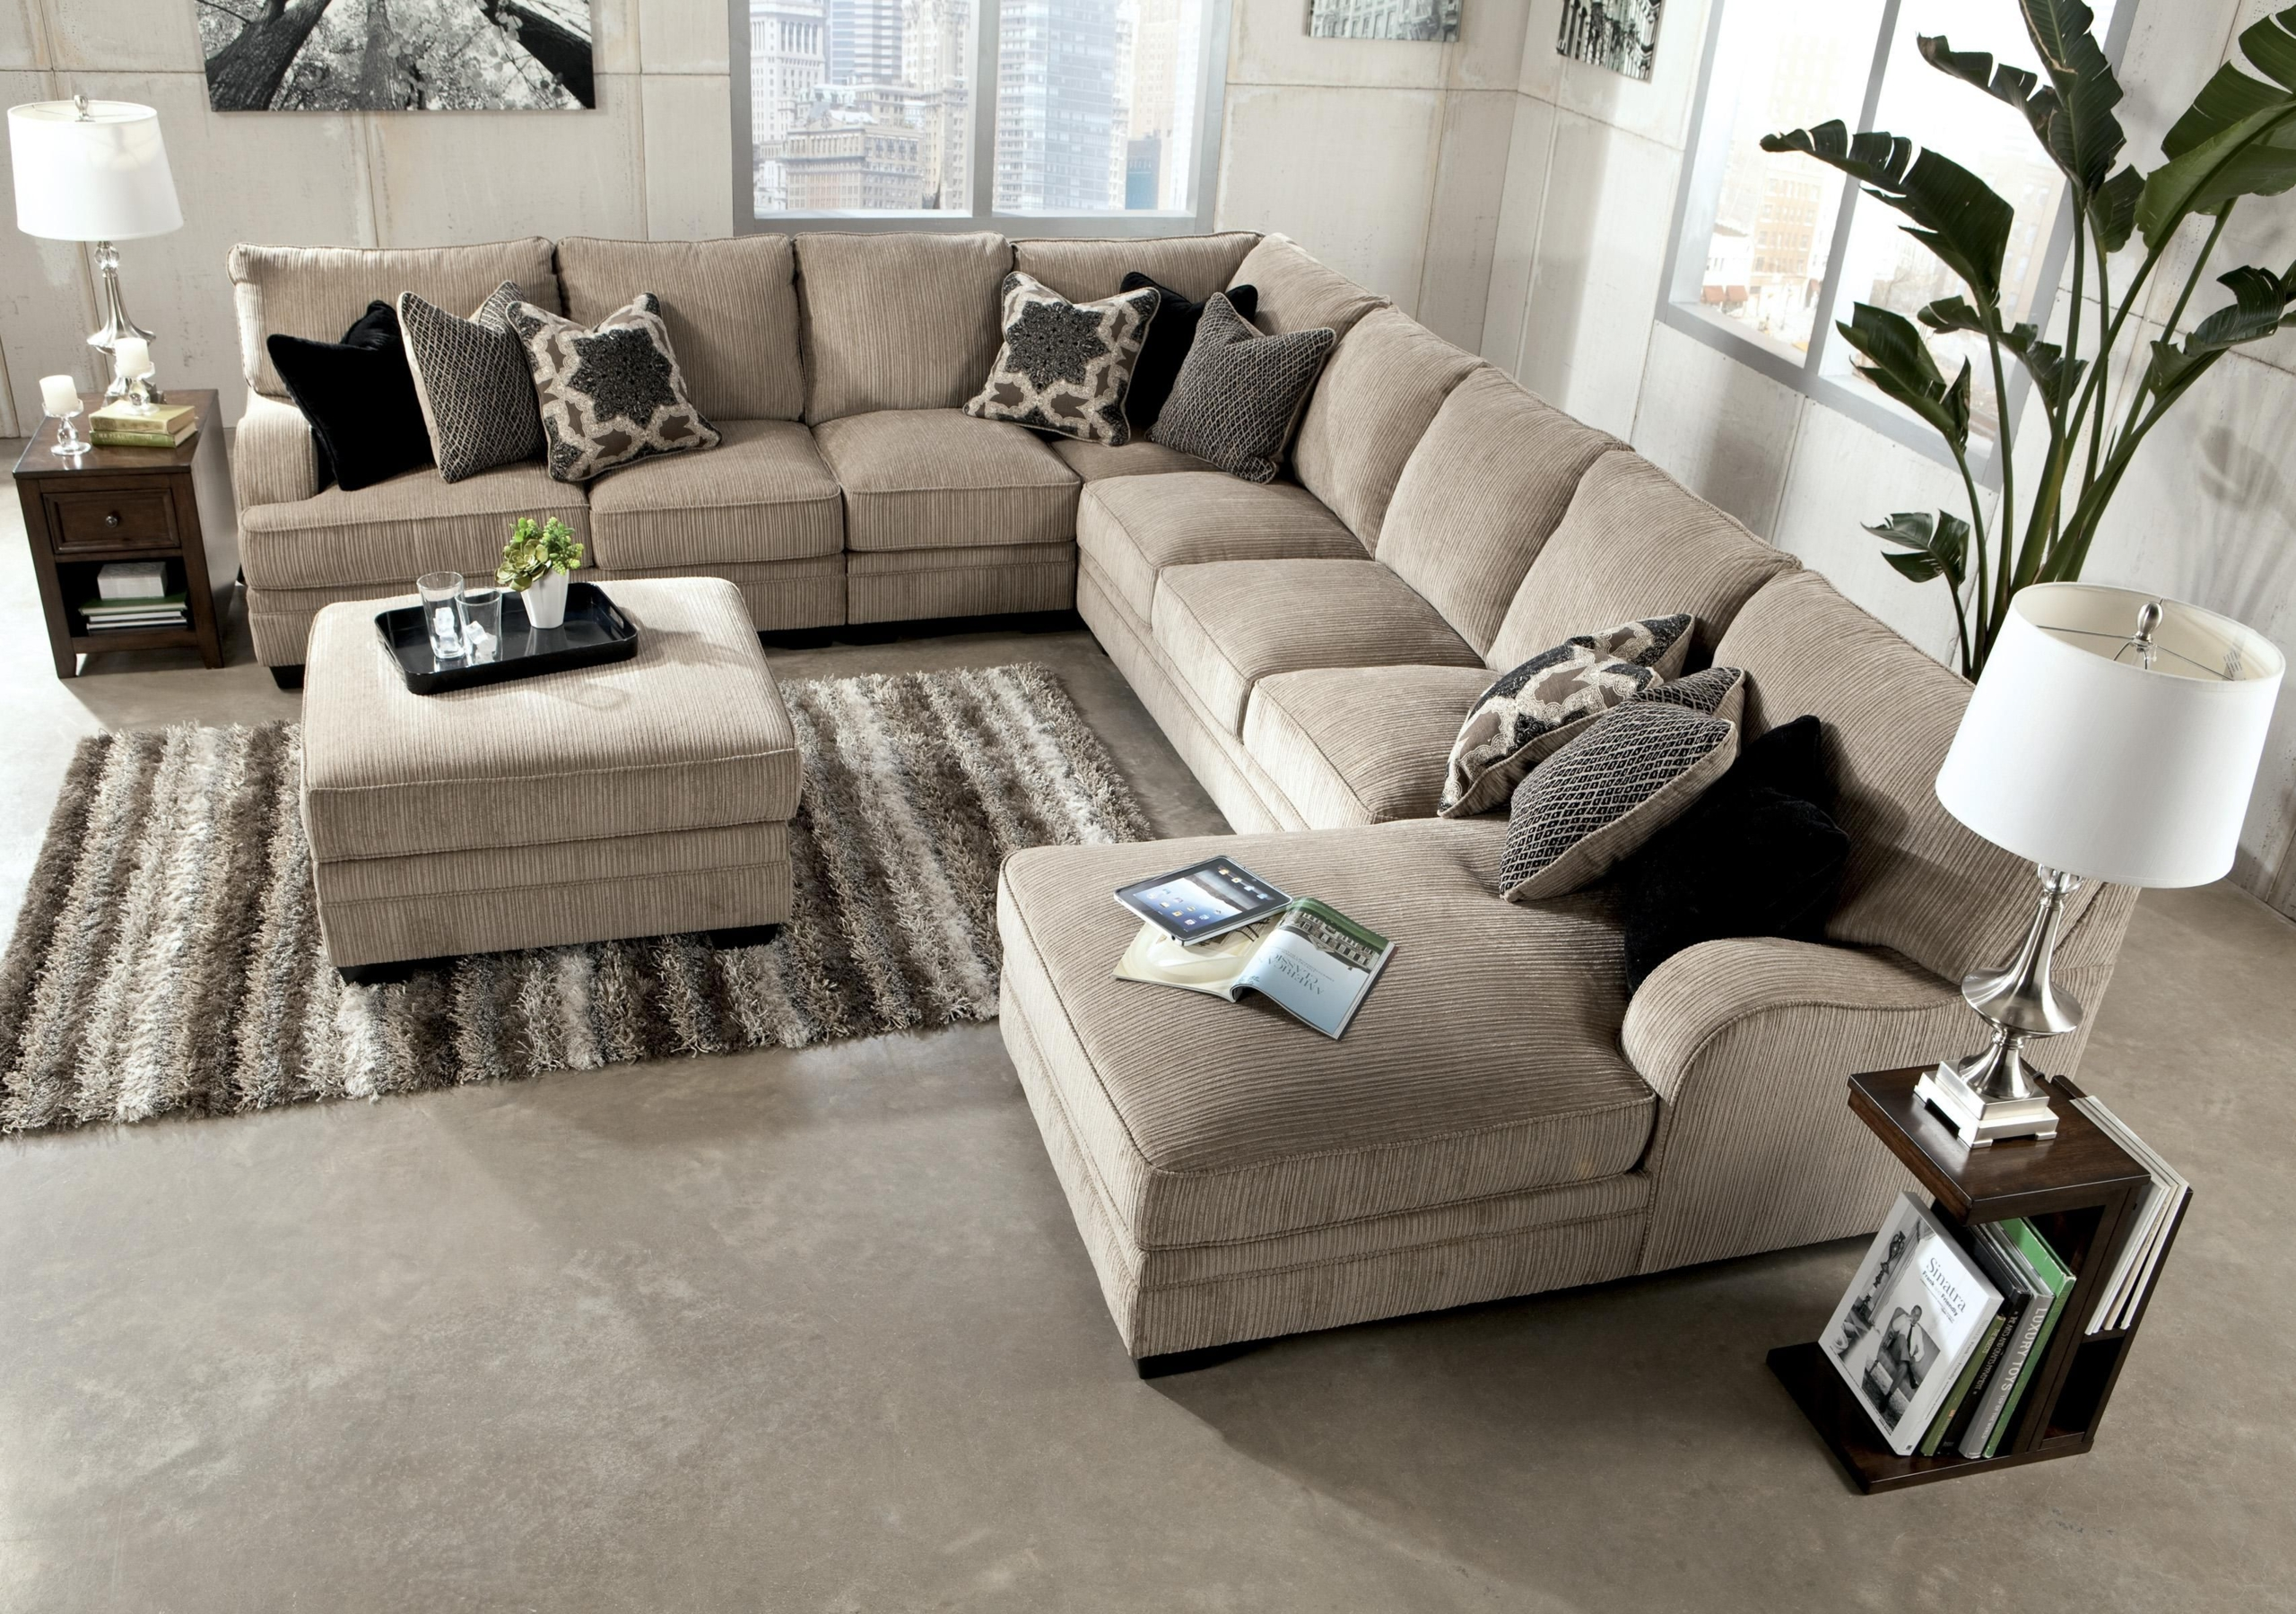 Marvelous Extra Large Sectional Sofas With Chaise | Chaise Design